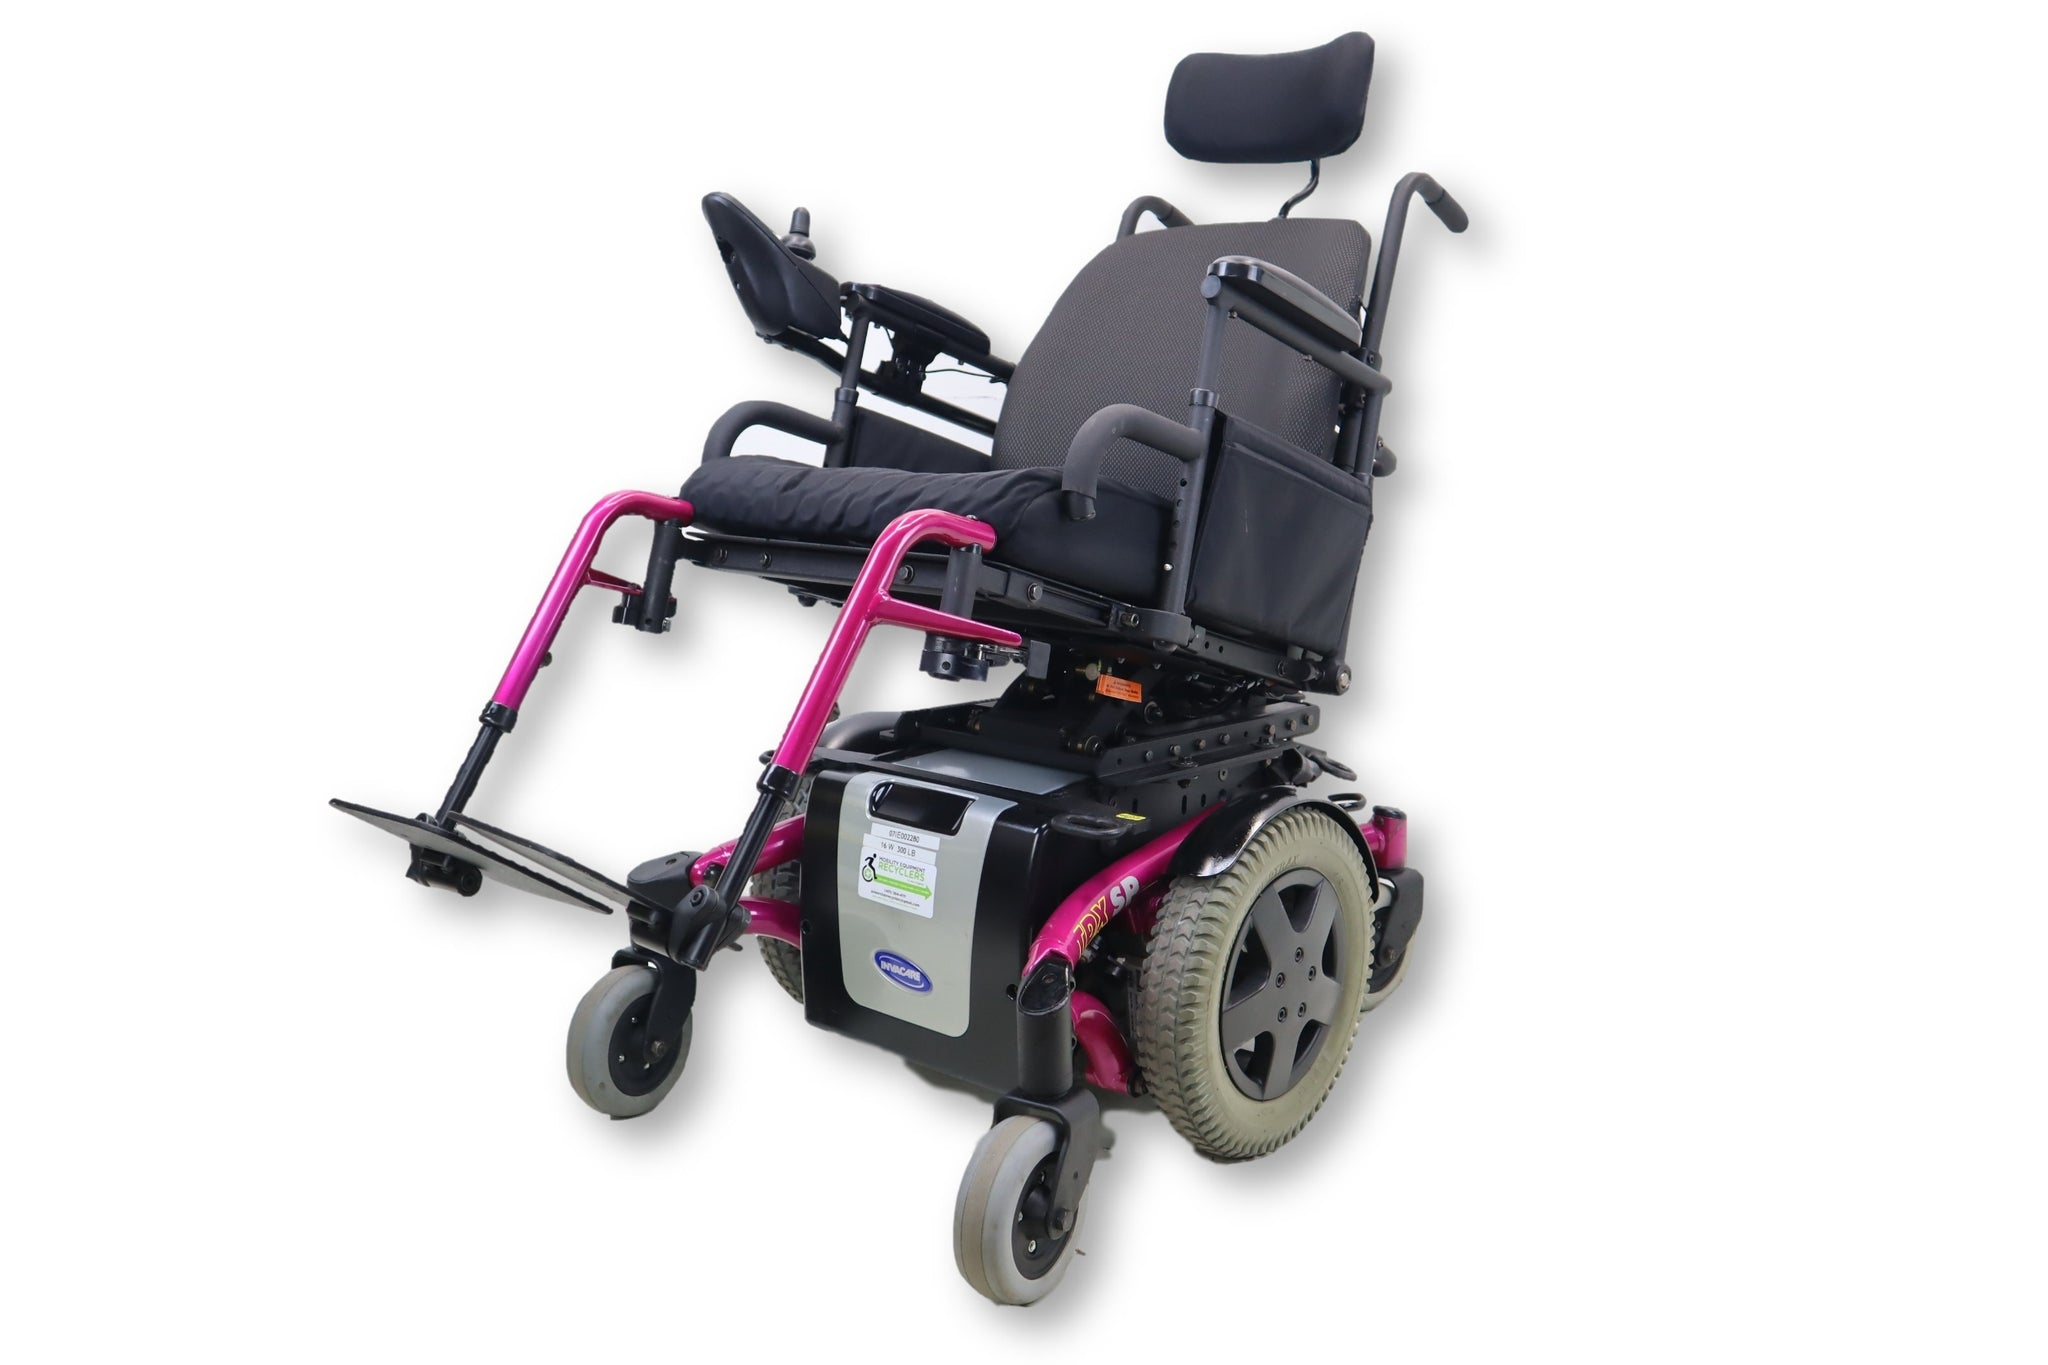 Invacare TDX SP Electric Wheelchair | Tilting Function | Swing Away Legrest | 17